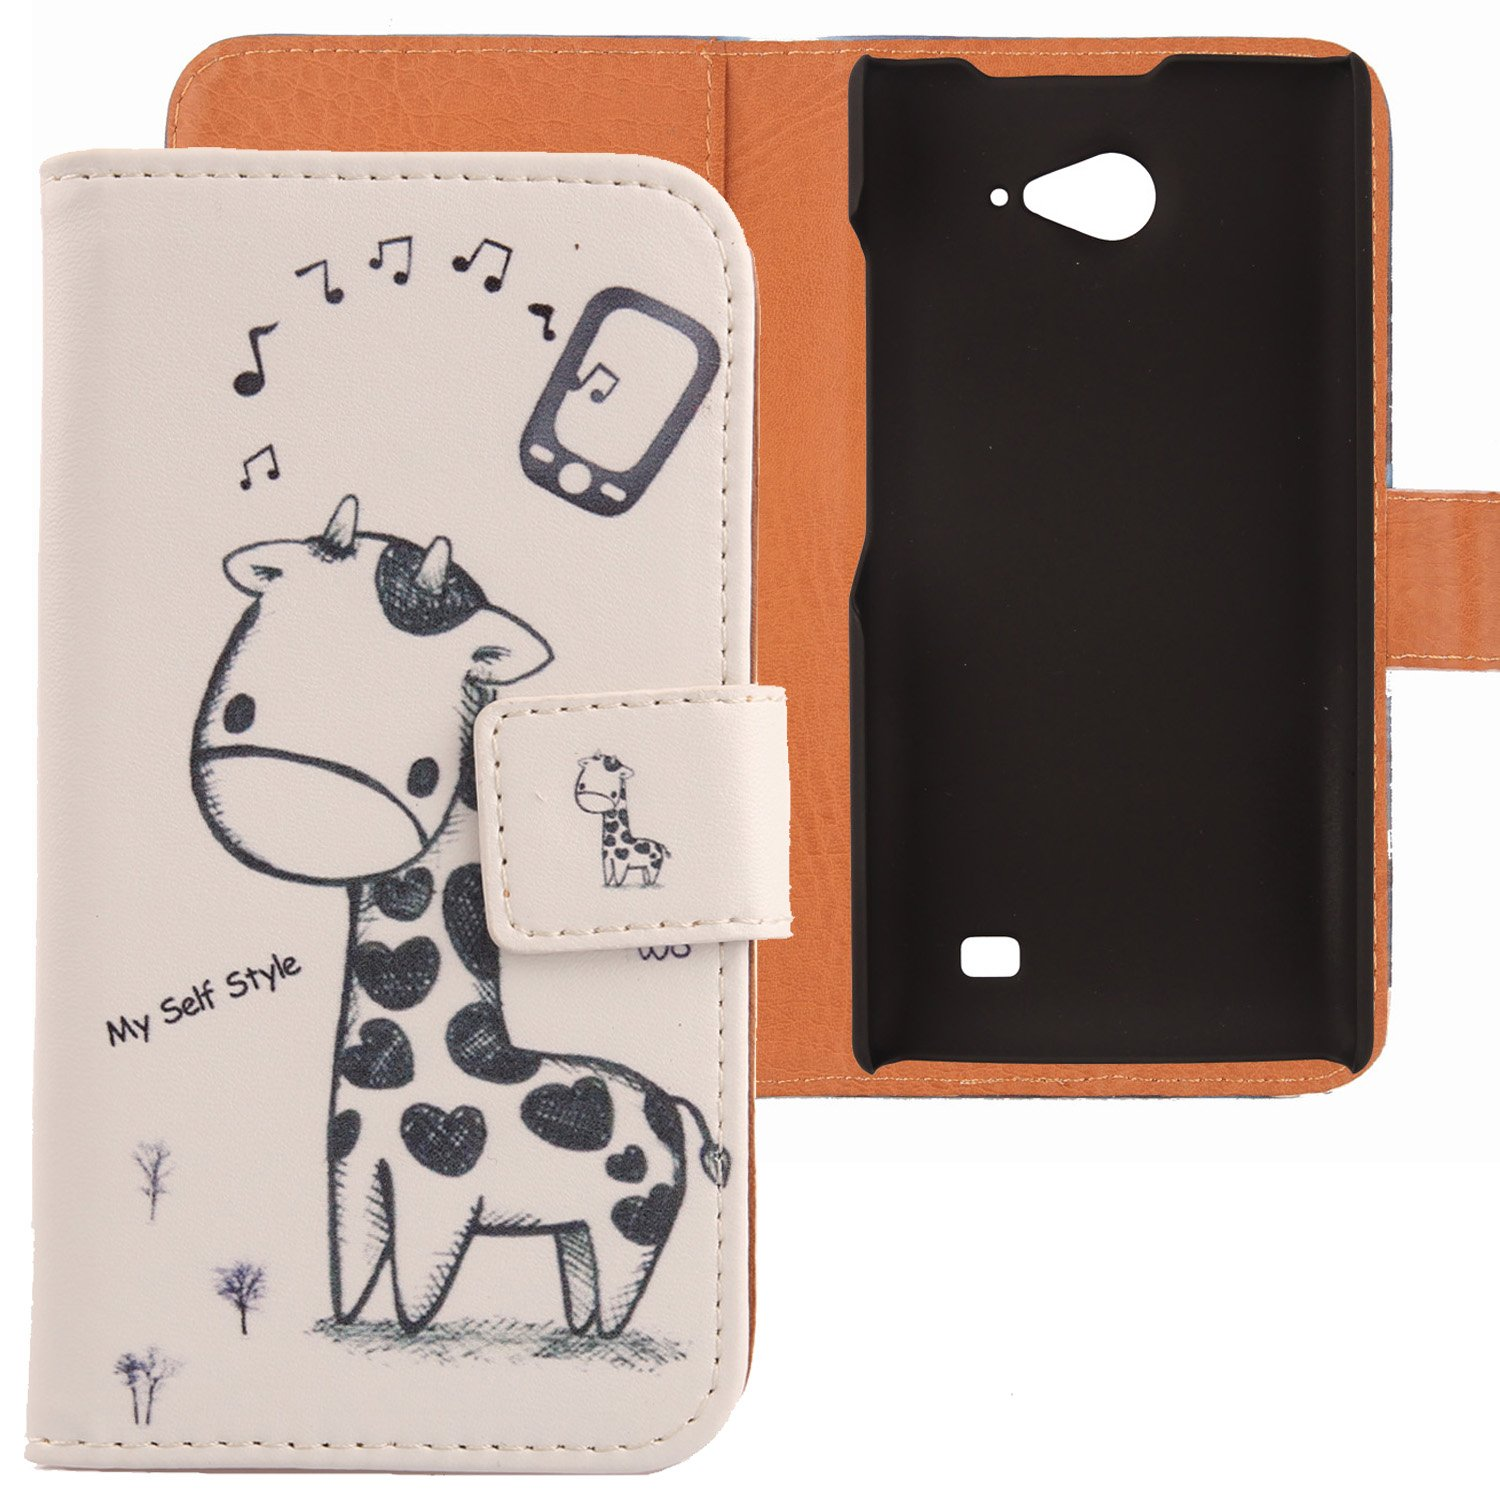 Lankashi Pattern PU Flip Leather Cover Skin Protection Case for THL W11 бампер на thl w11